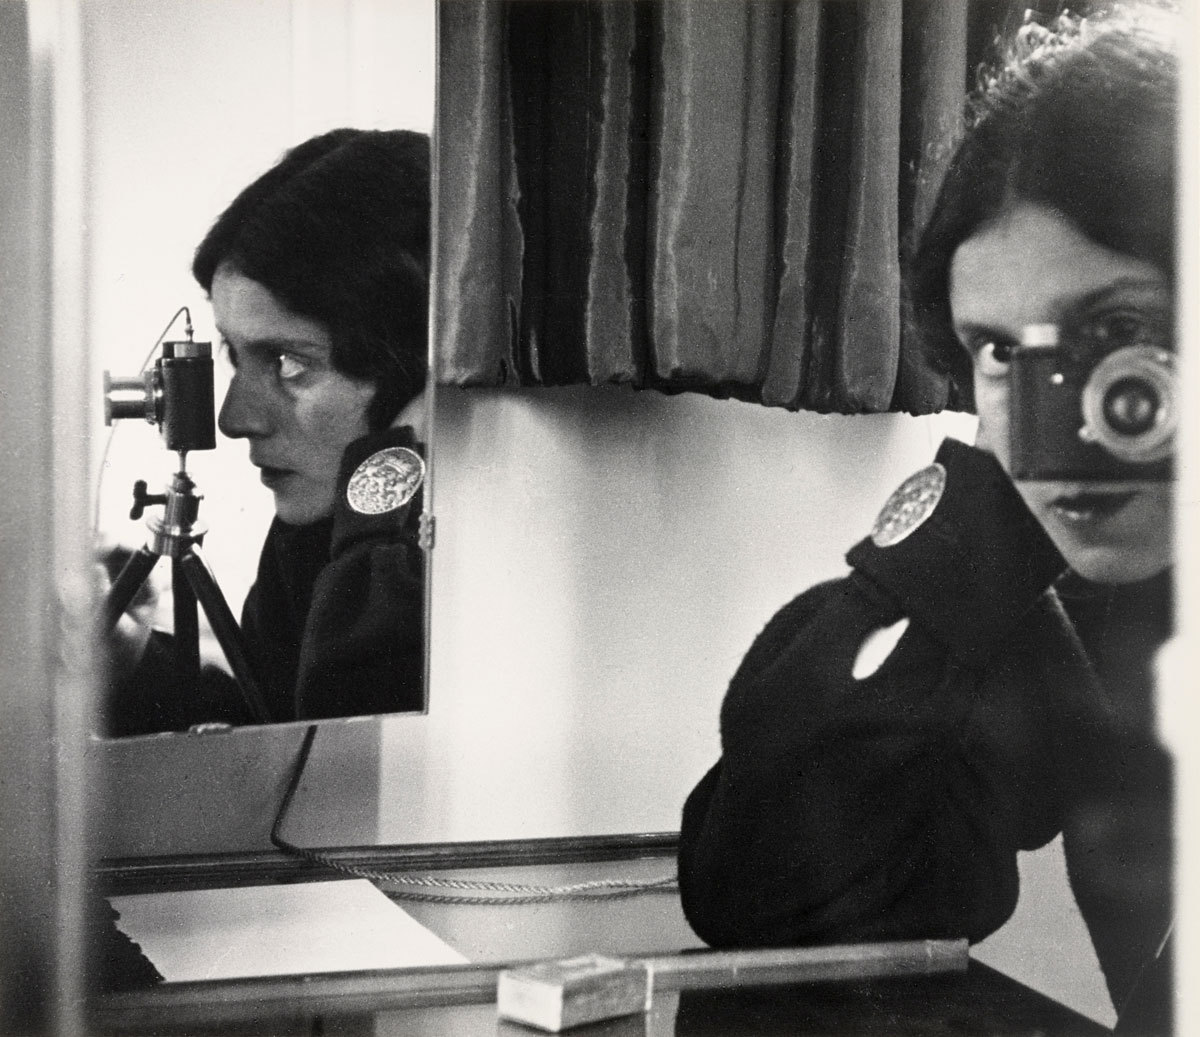 Ilse Bing - Self-Portrait in mirrors, 1931